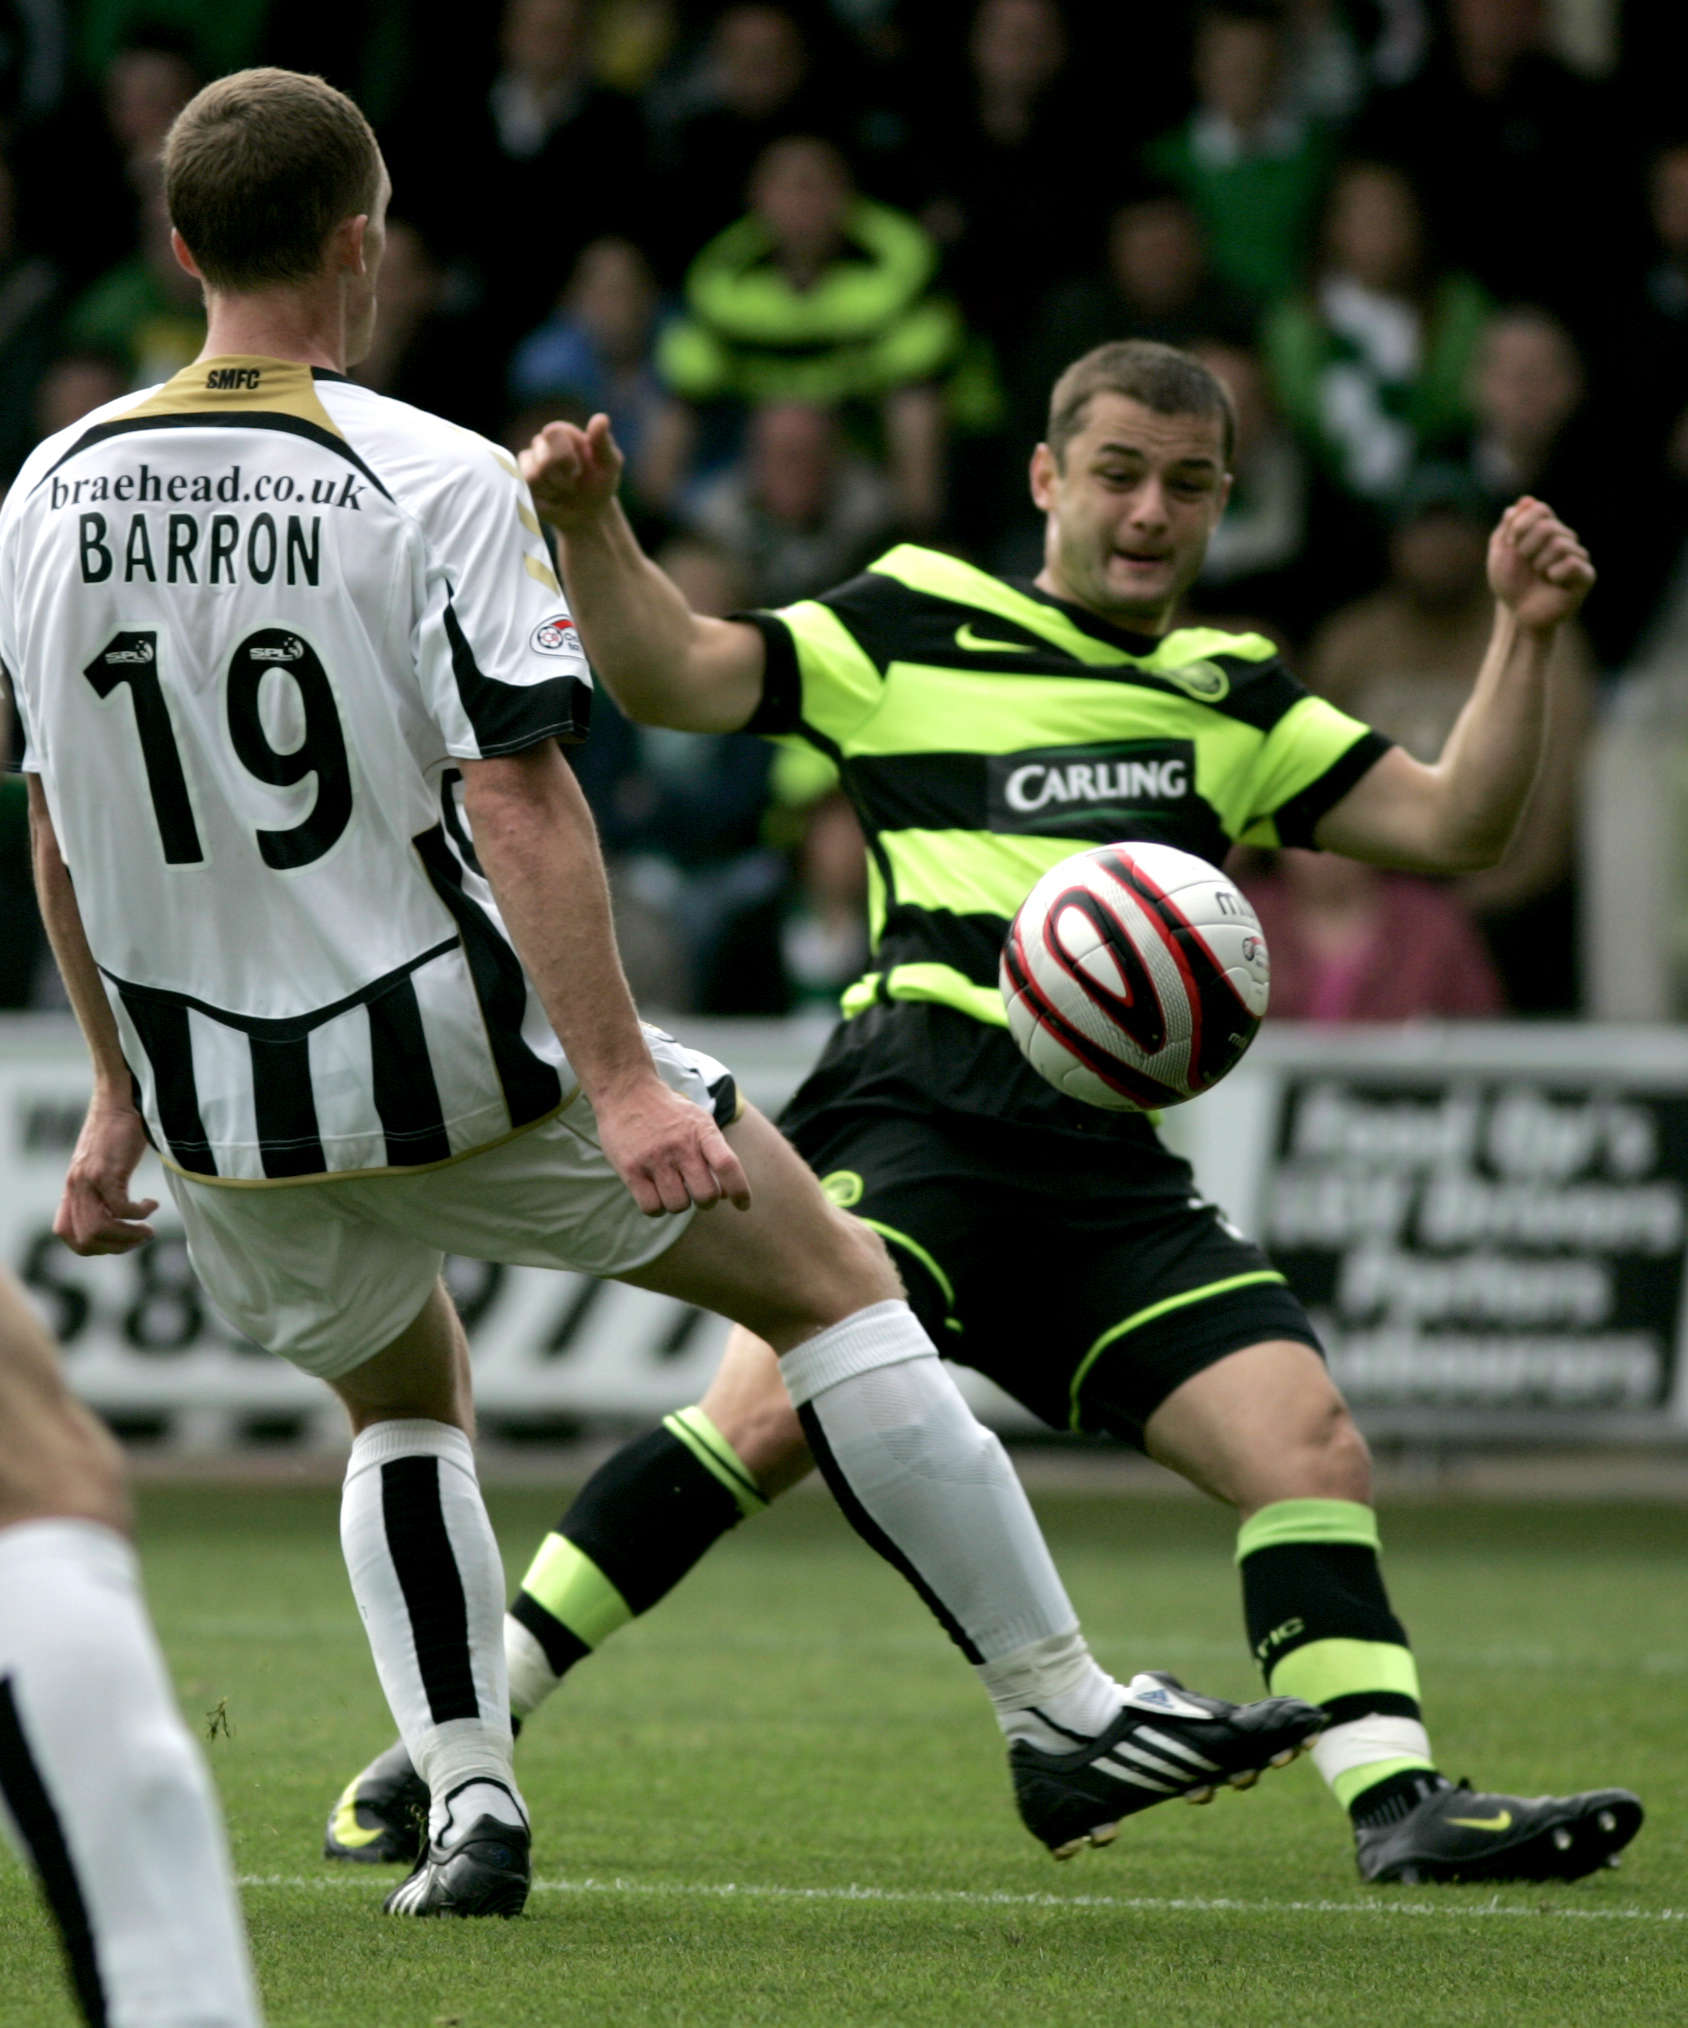 Shaun Maloney (right), seen here with his previous club Celtic, scored the all-important goal that gave Wigan a vital 1-0 victory over defending champions Manchester United on Wednesday (Alasdair Middleton/Wikimedia Commons).